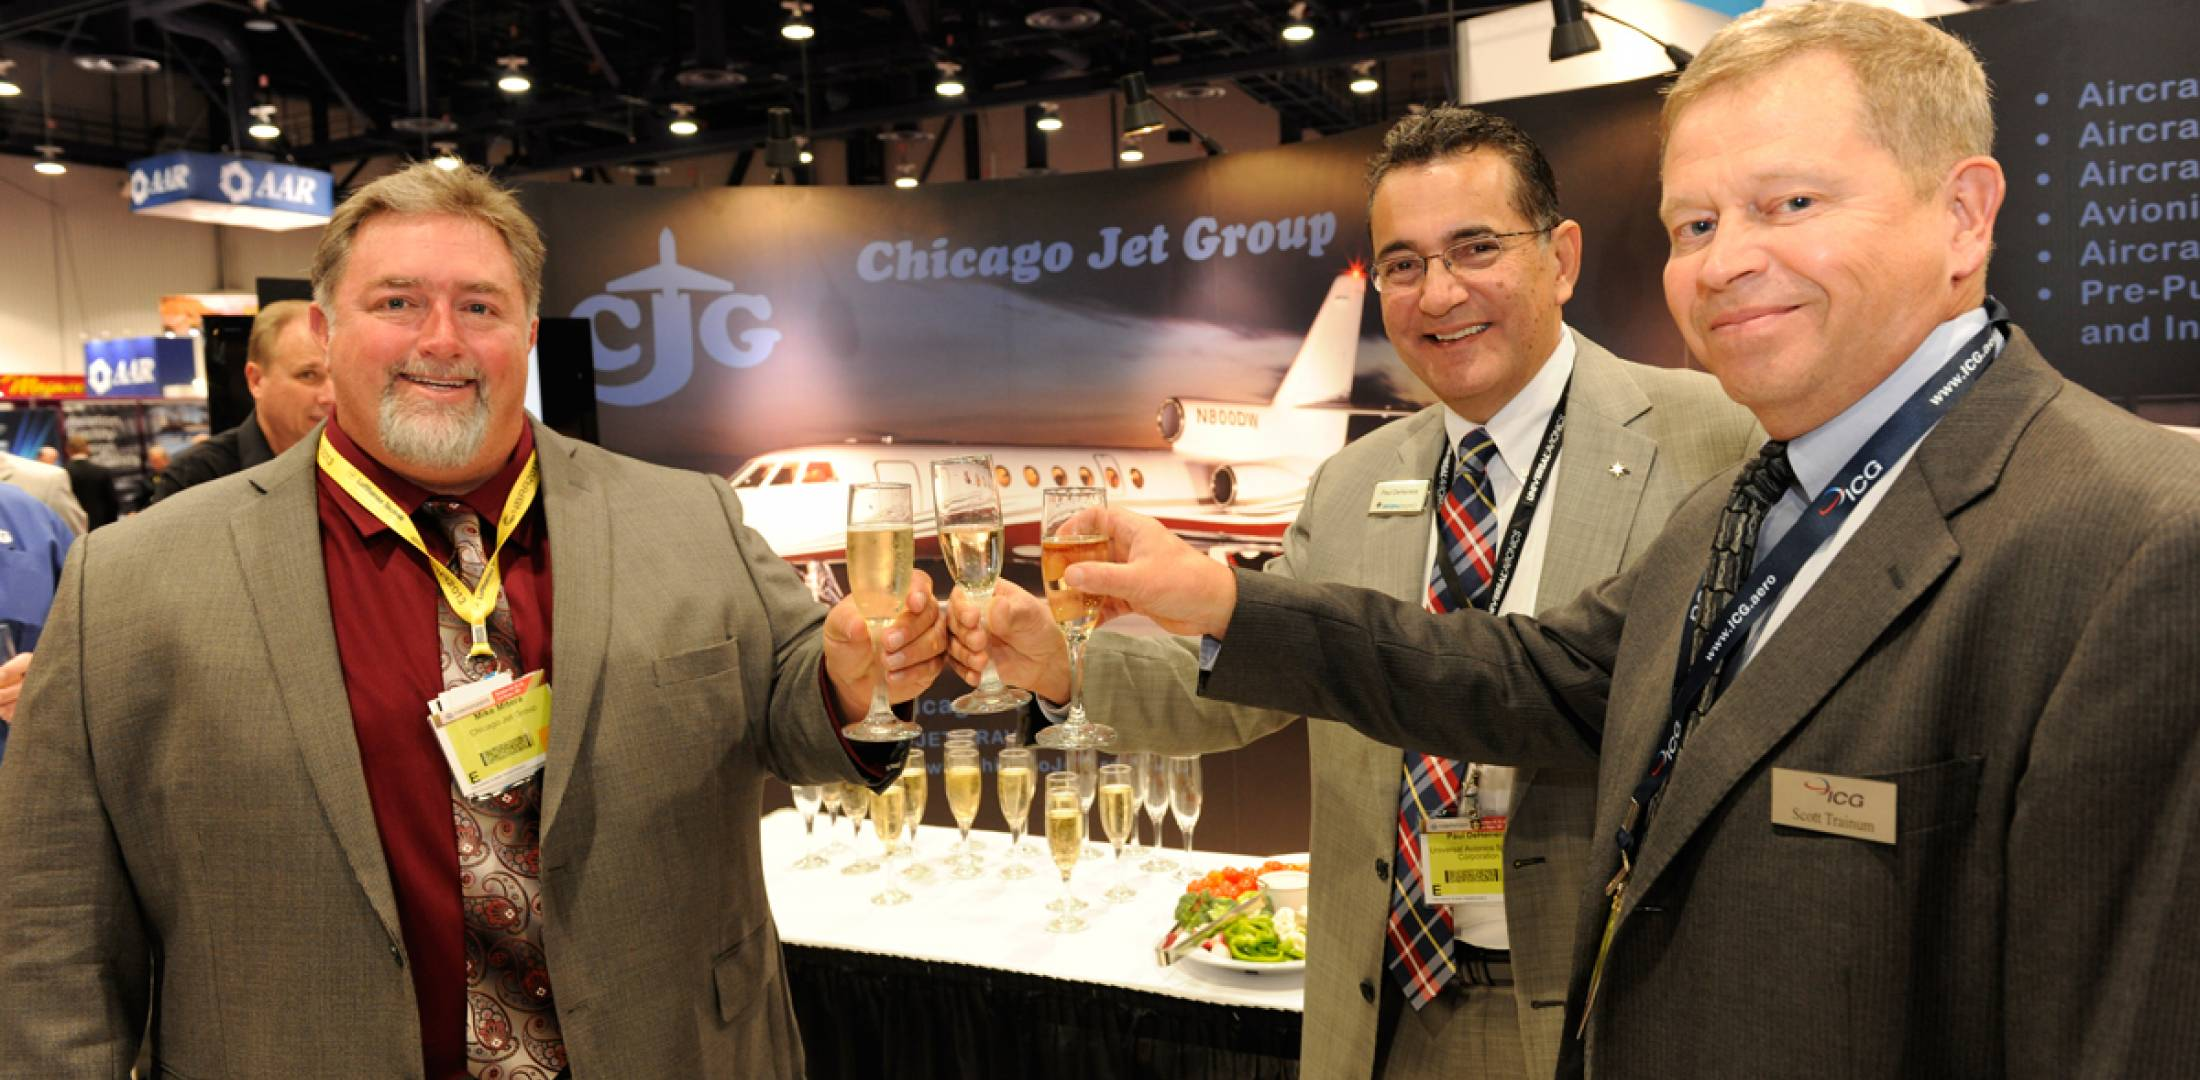 l-r: Mike Mitera, Chicago Jet Group director of operations, Paul DeHerrera, CEO of Universal Avionics, L. Scott Trainum, CEO of ICG